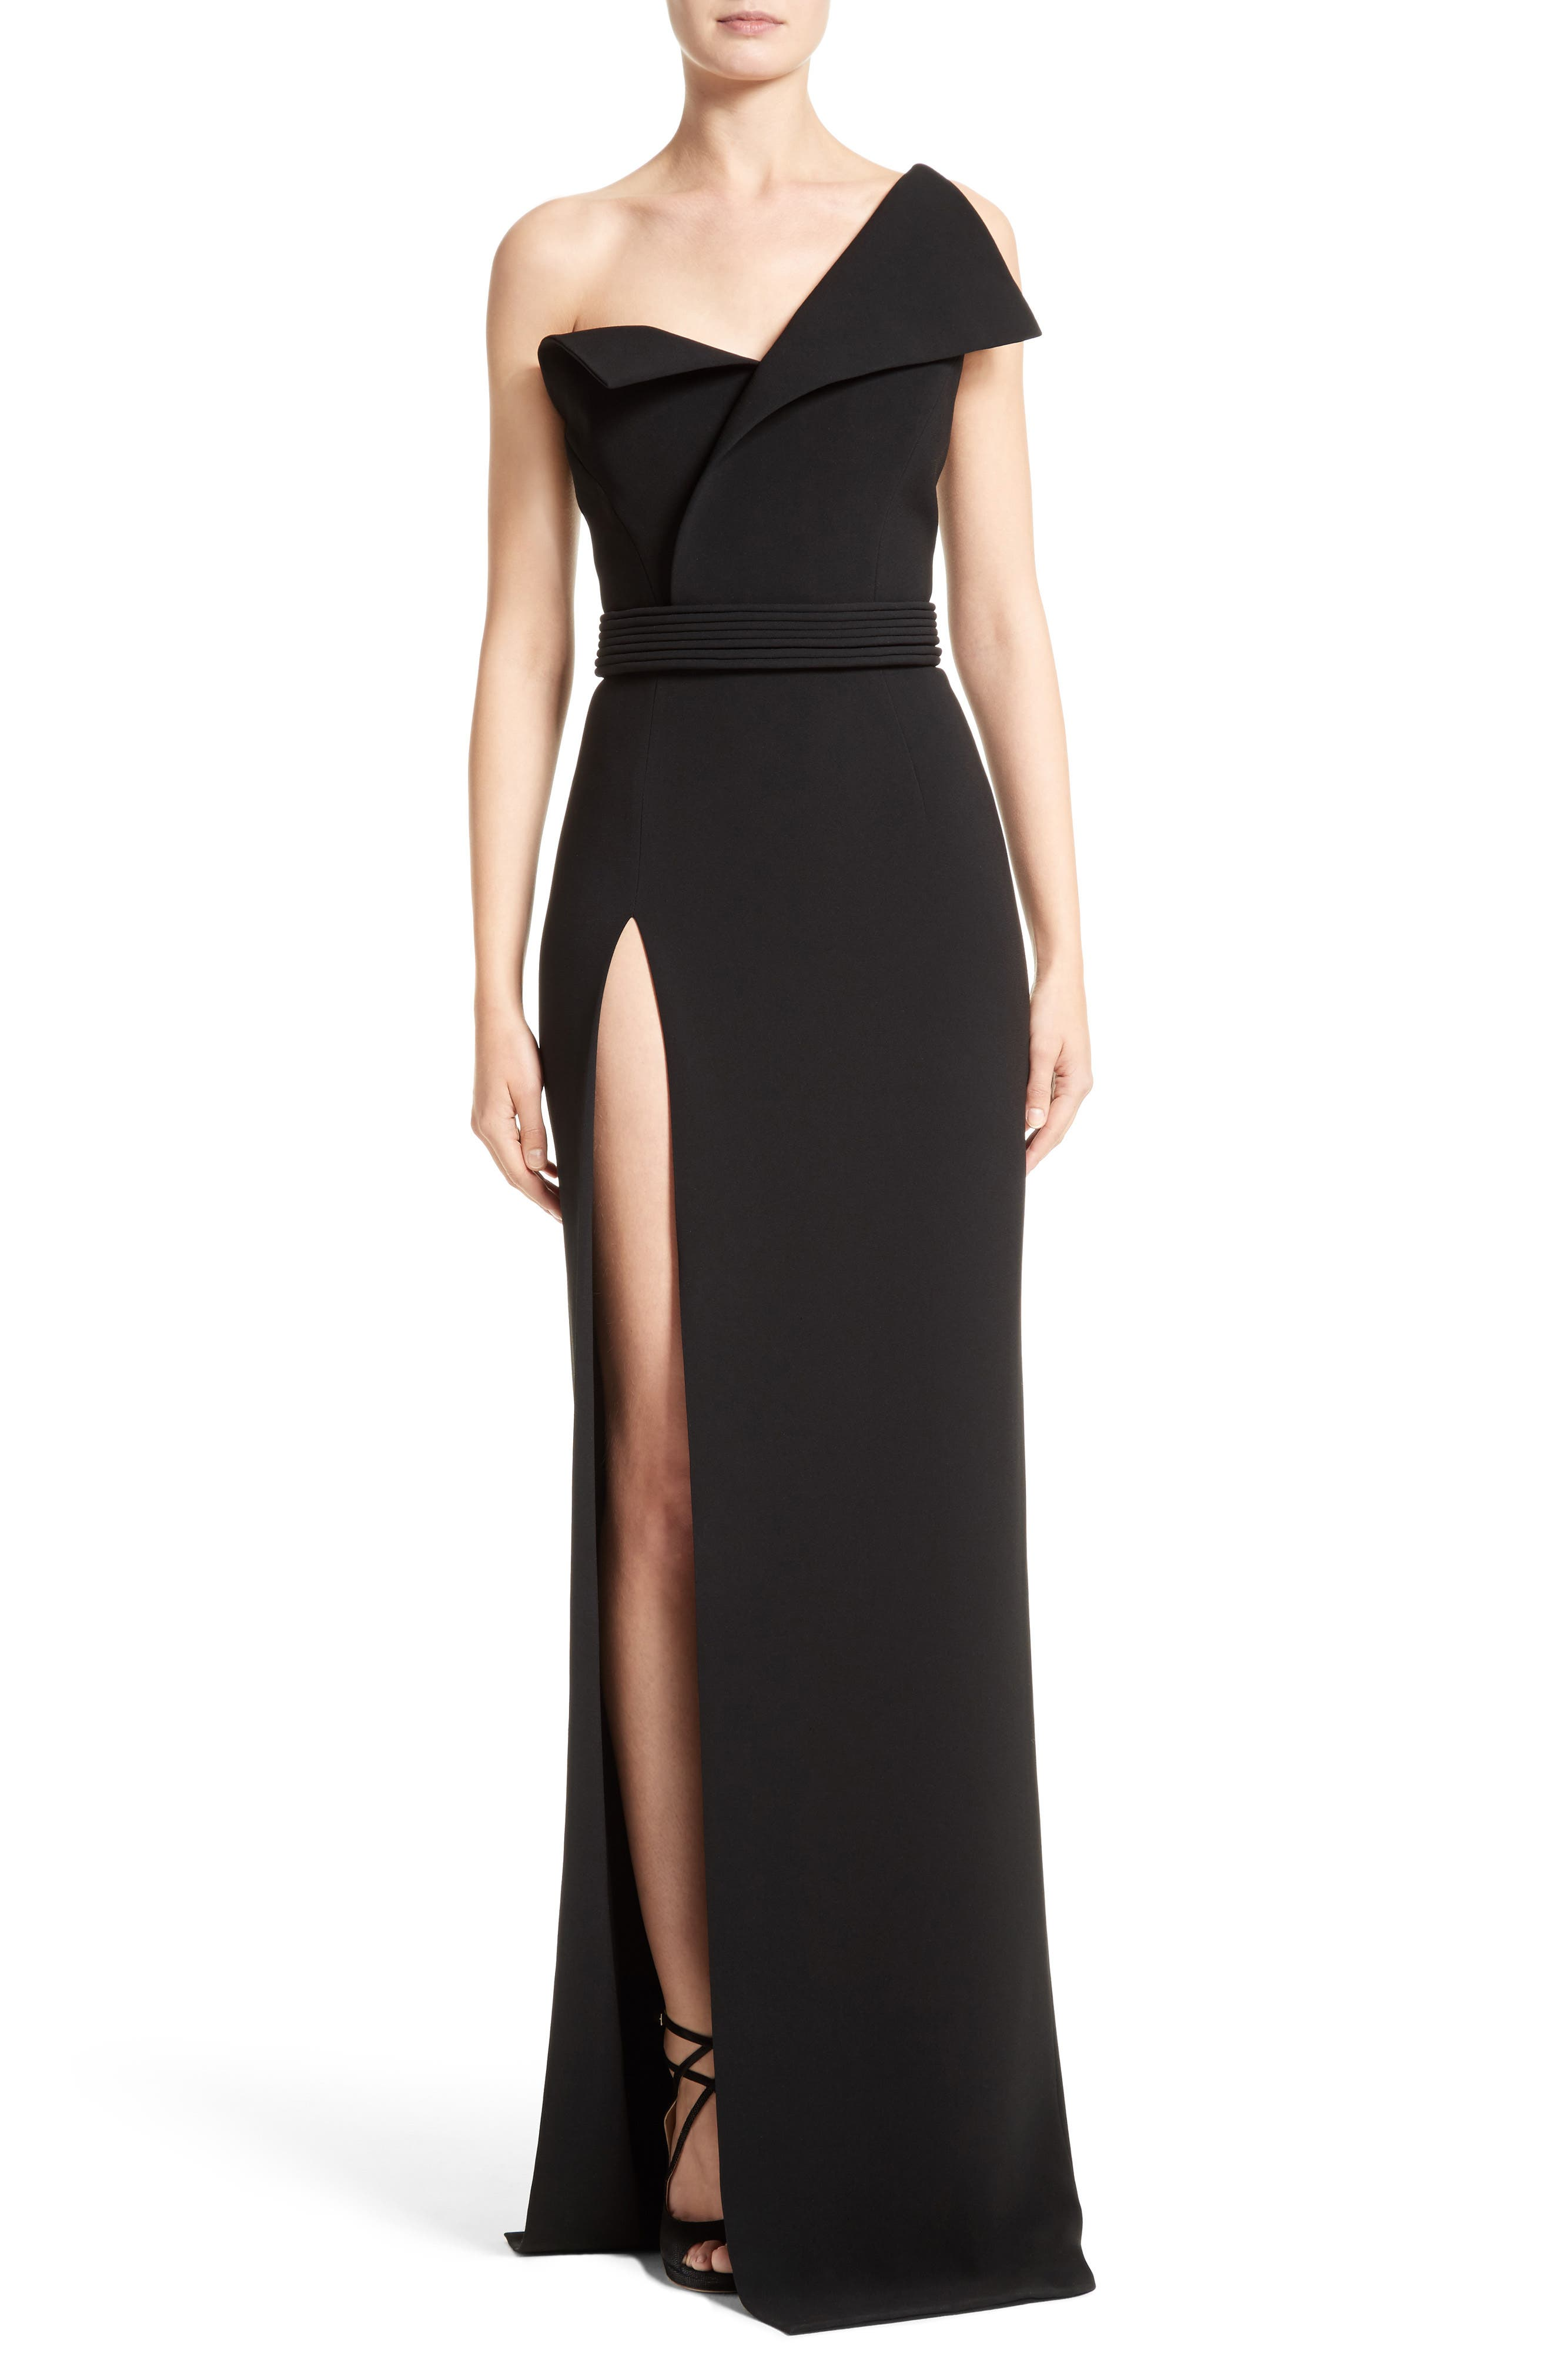 Belted Foldover Neck Gown with High Slit,                         Main,                         color, Black